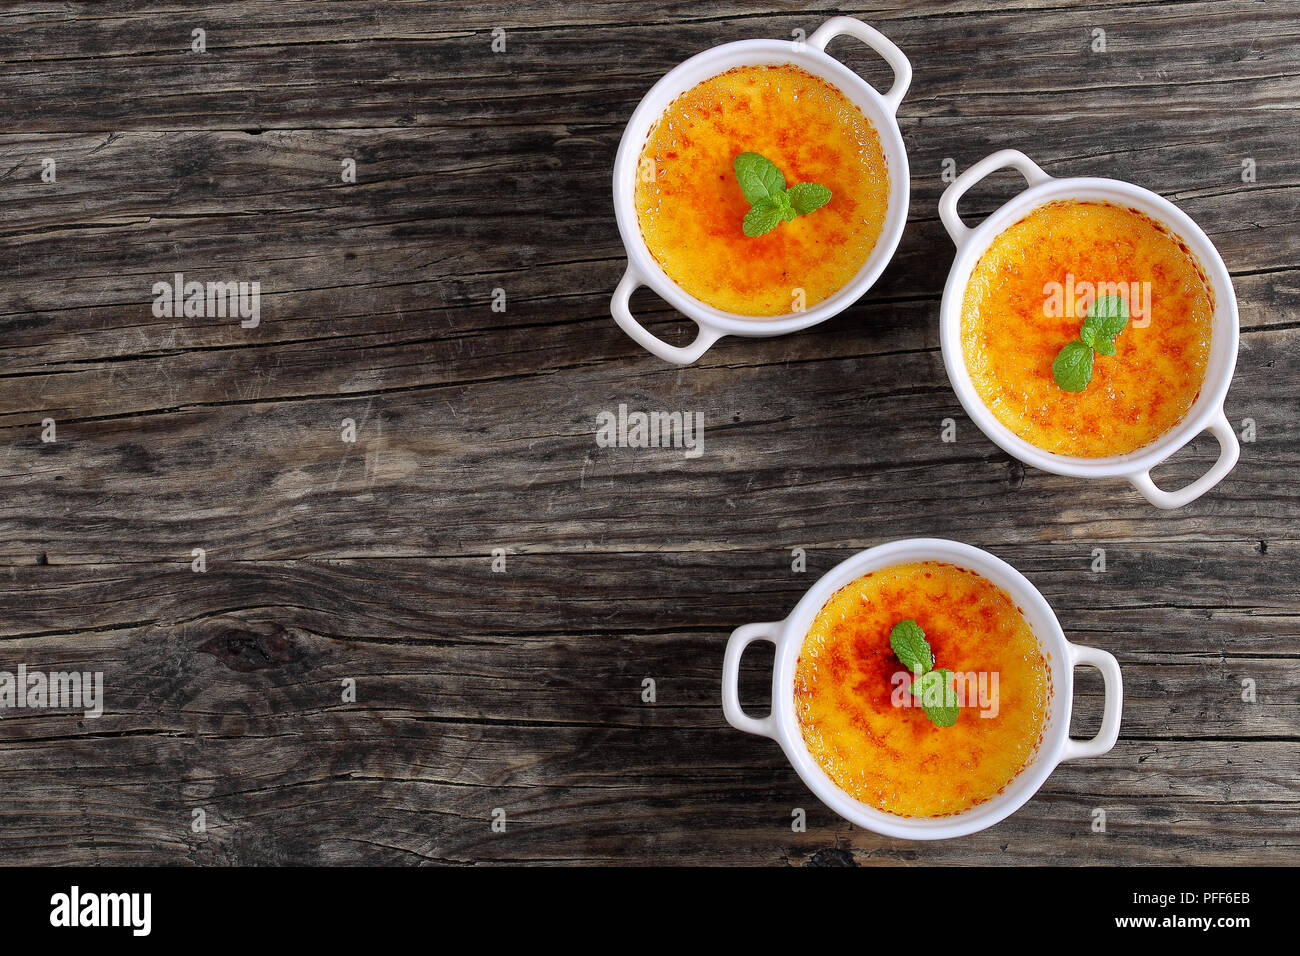 Creme brulee - french dessert of custard topped with caramelized sugar and decorated with mint leaves in white ceramic souffle dishes on old rustic ta Stock Photo